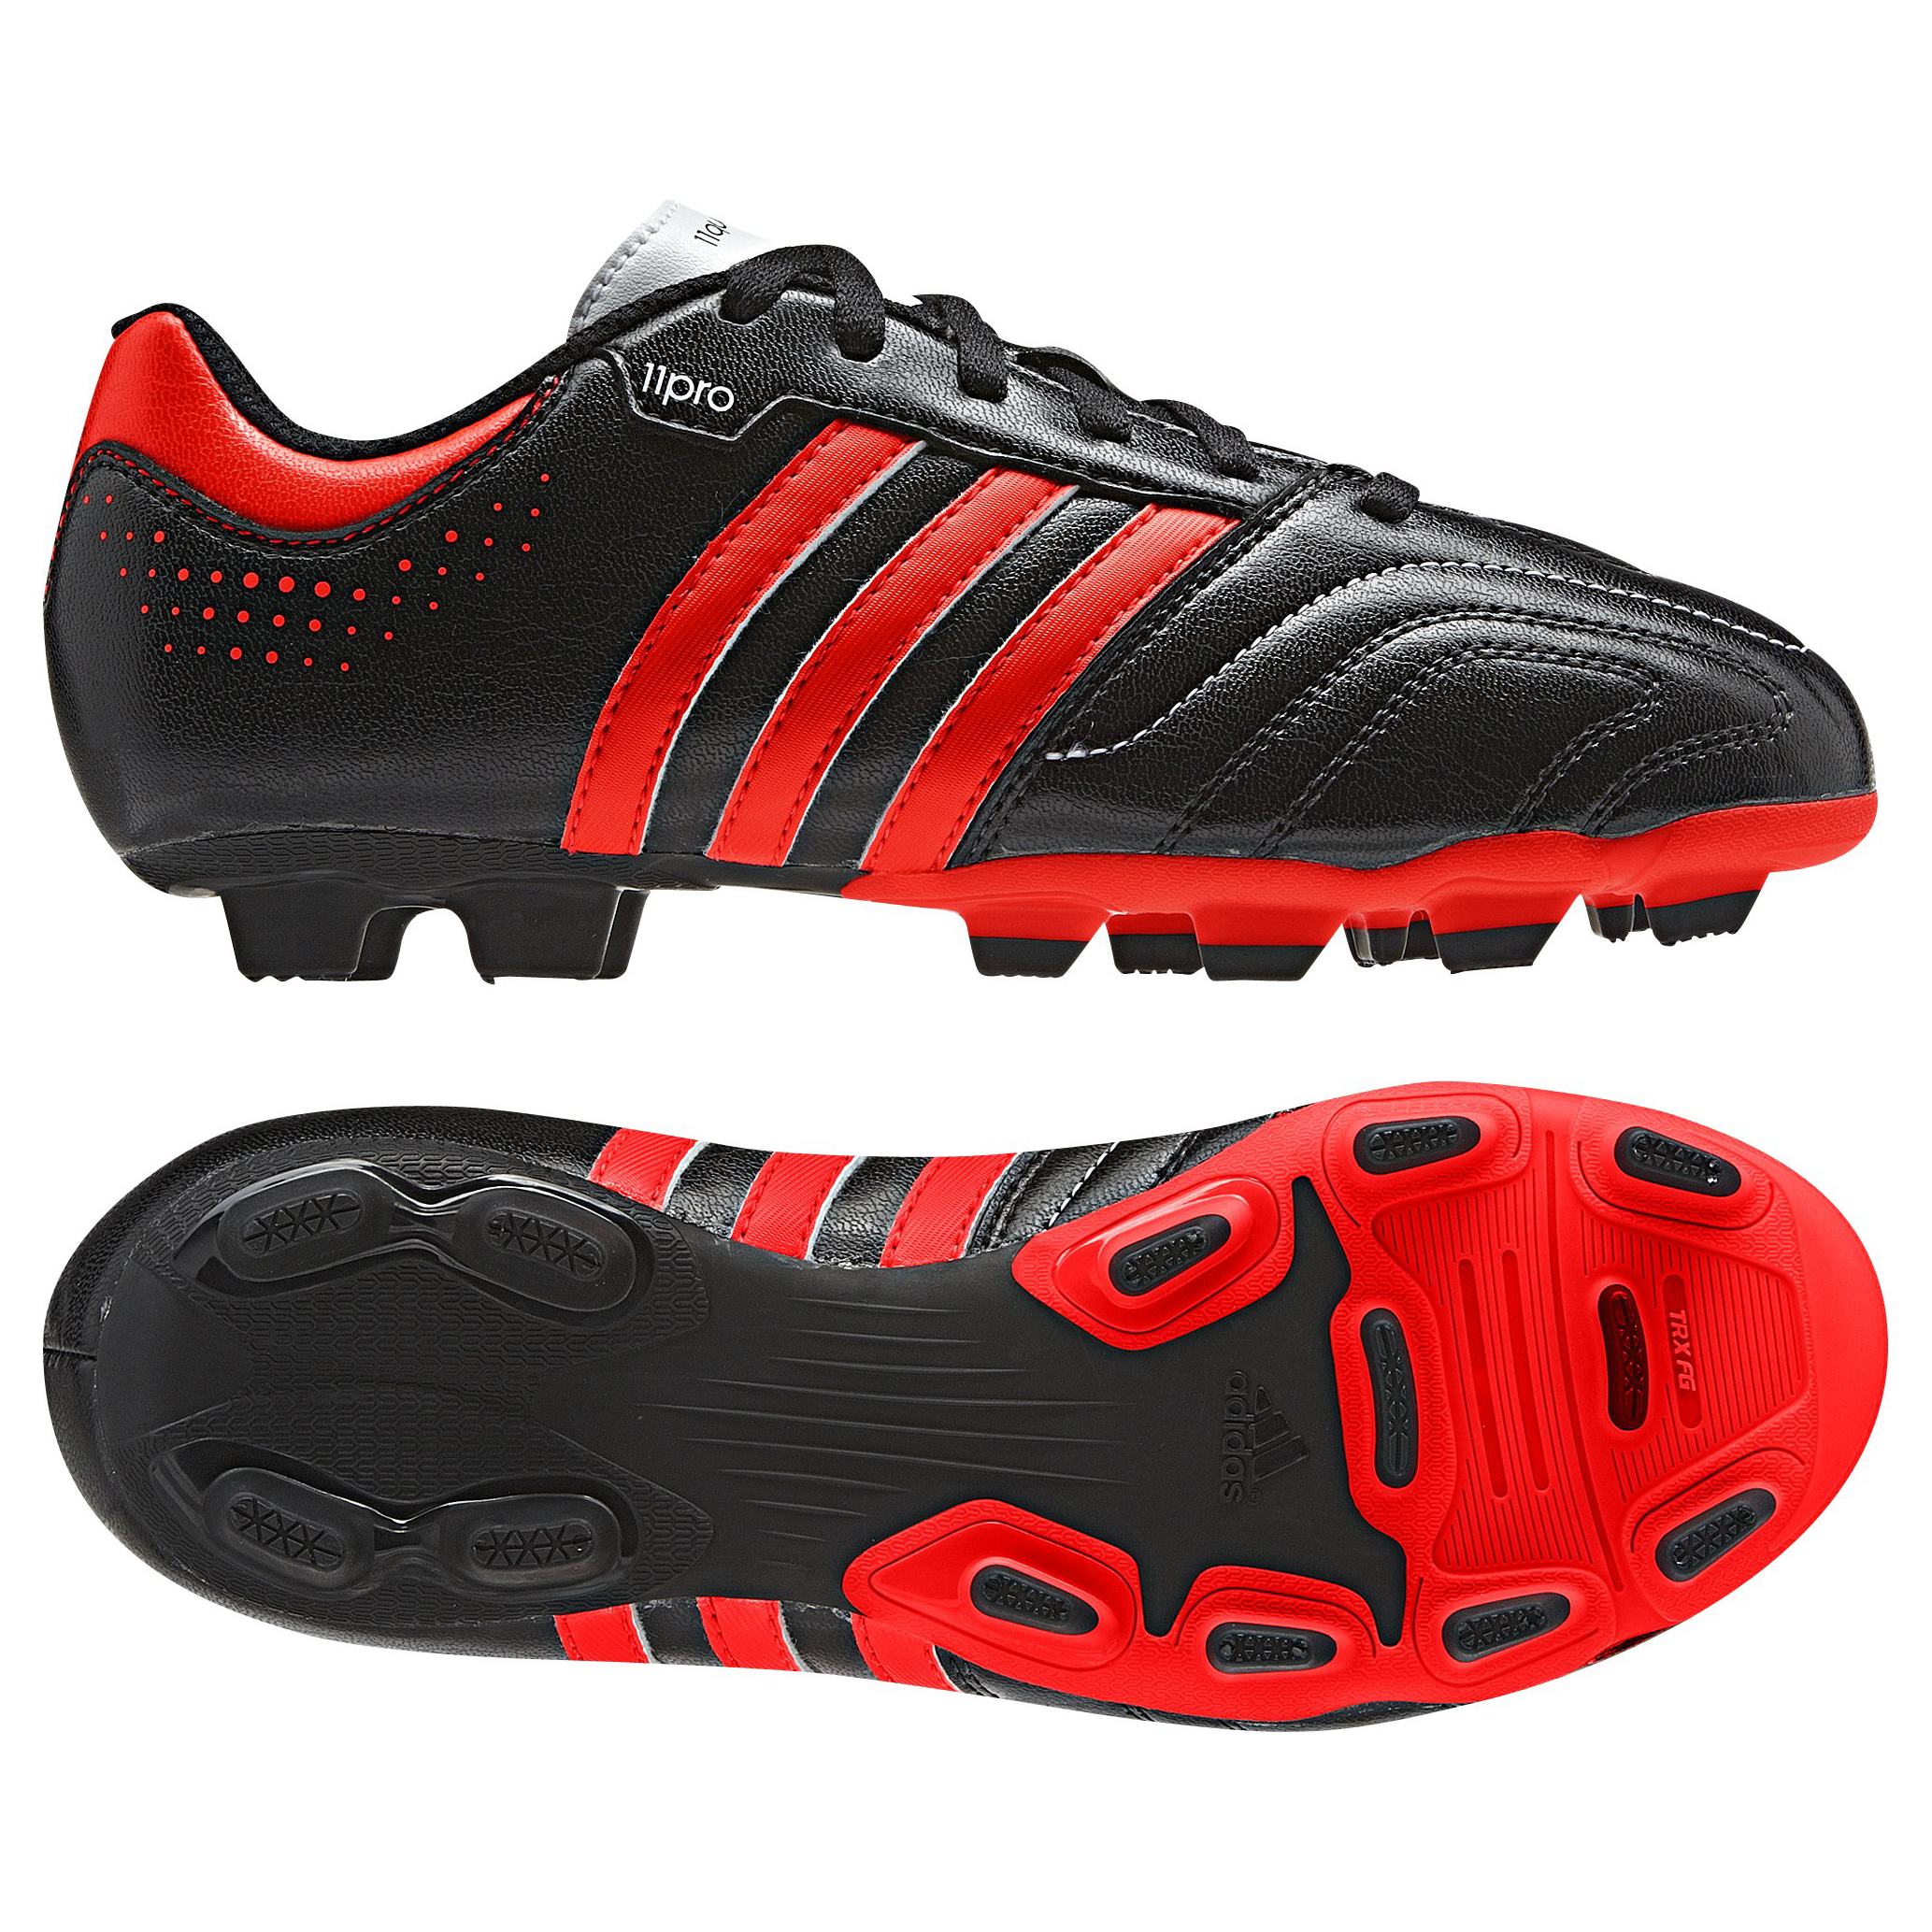 Adidas 11Questra TRX Firm Ground Football Boots - Black/Infrared/Running White - Kids